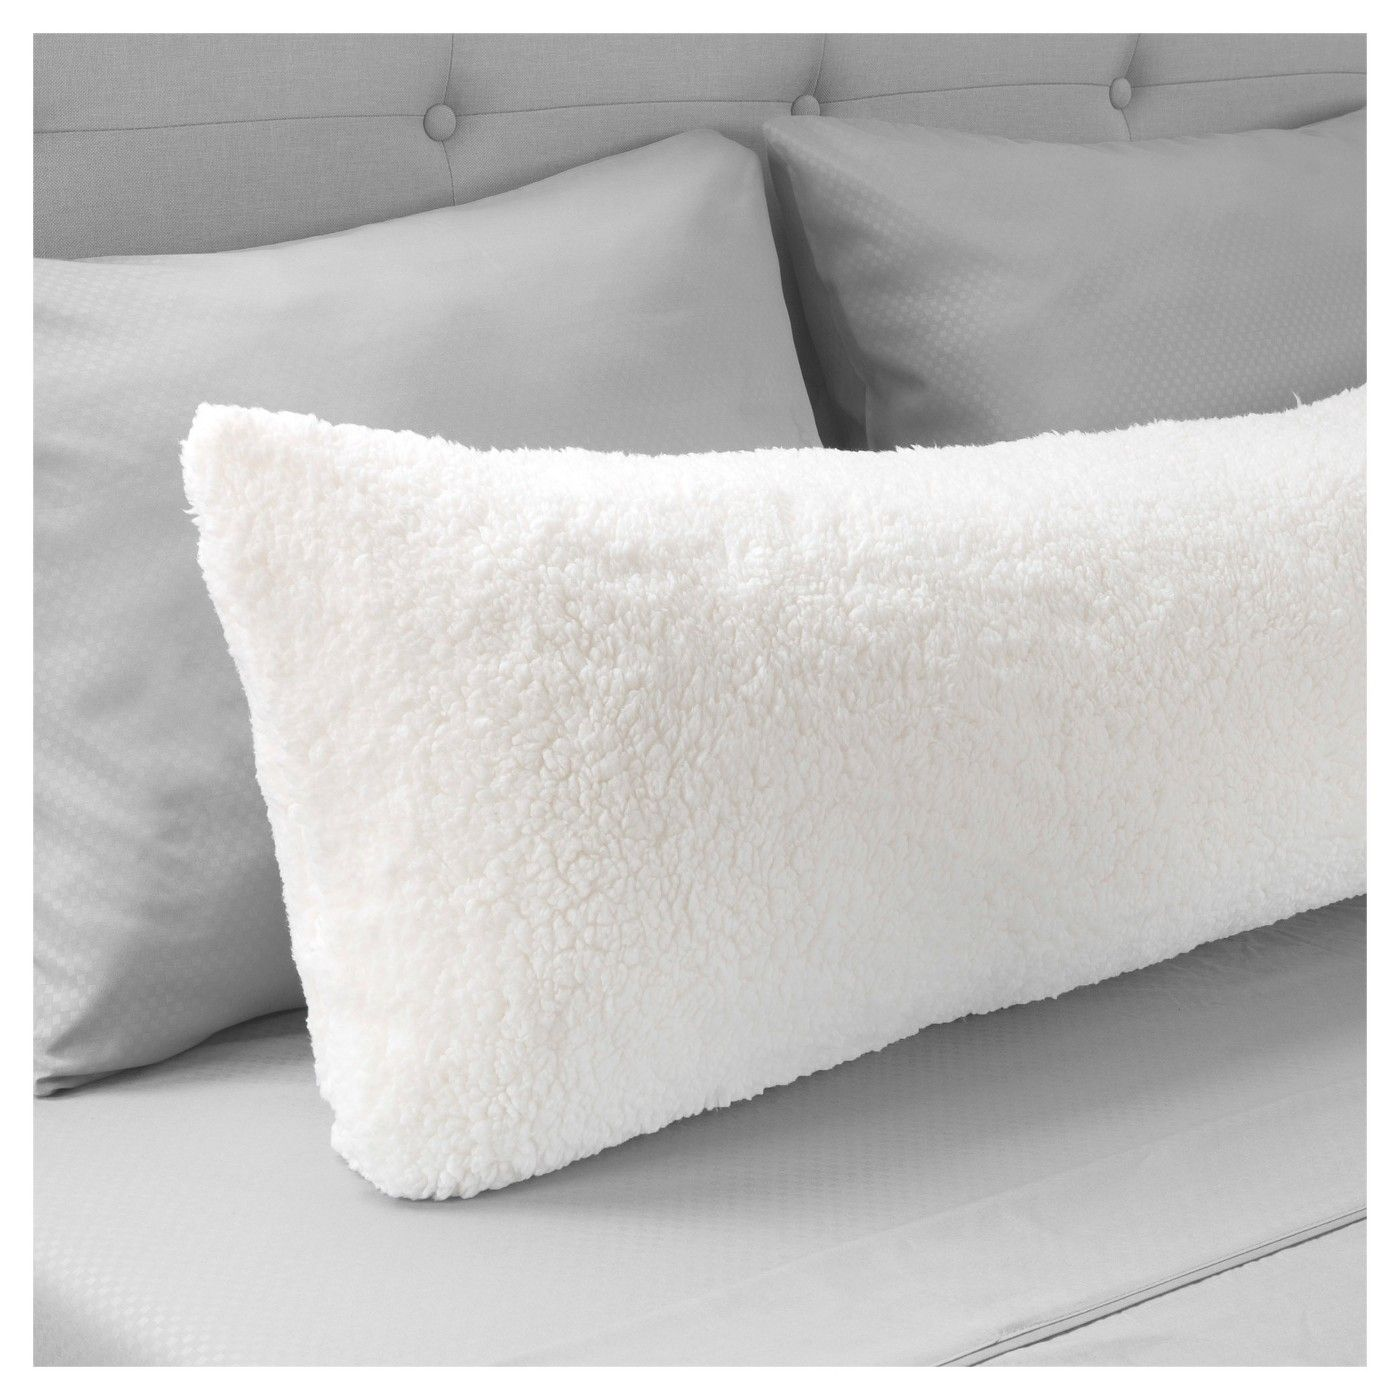 Sherpa Body Pillow Cover.Soft Sherpa Body Pillow Cover Yorkshire Home Image 2 Of